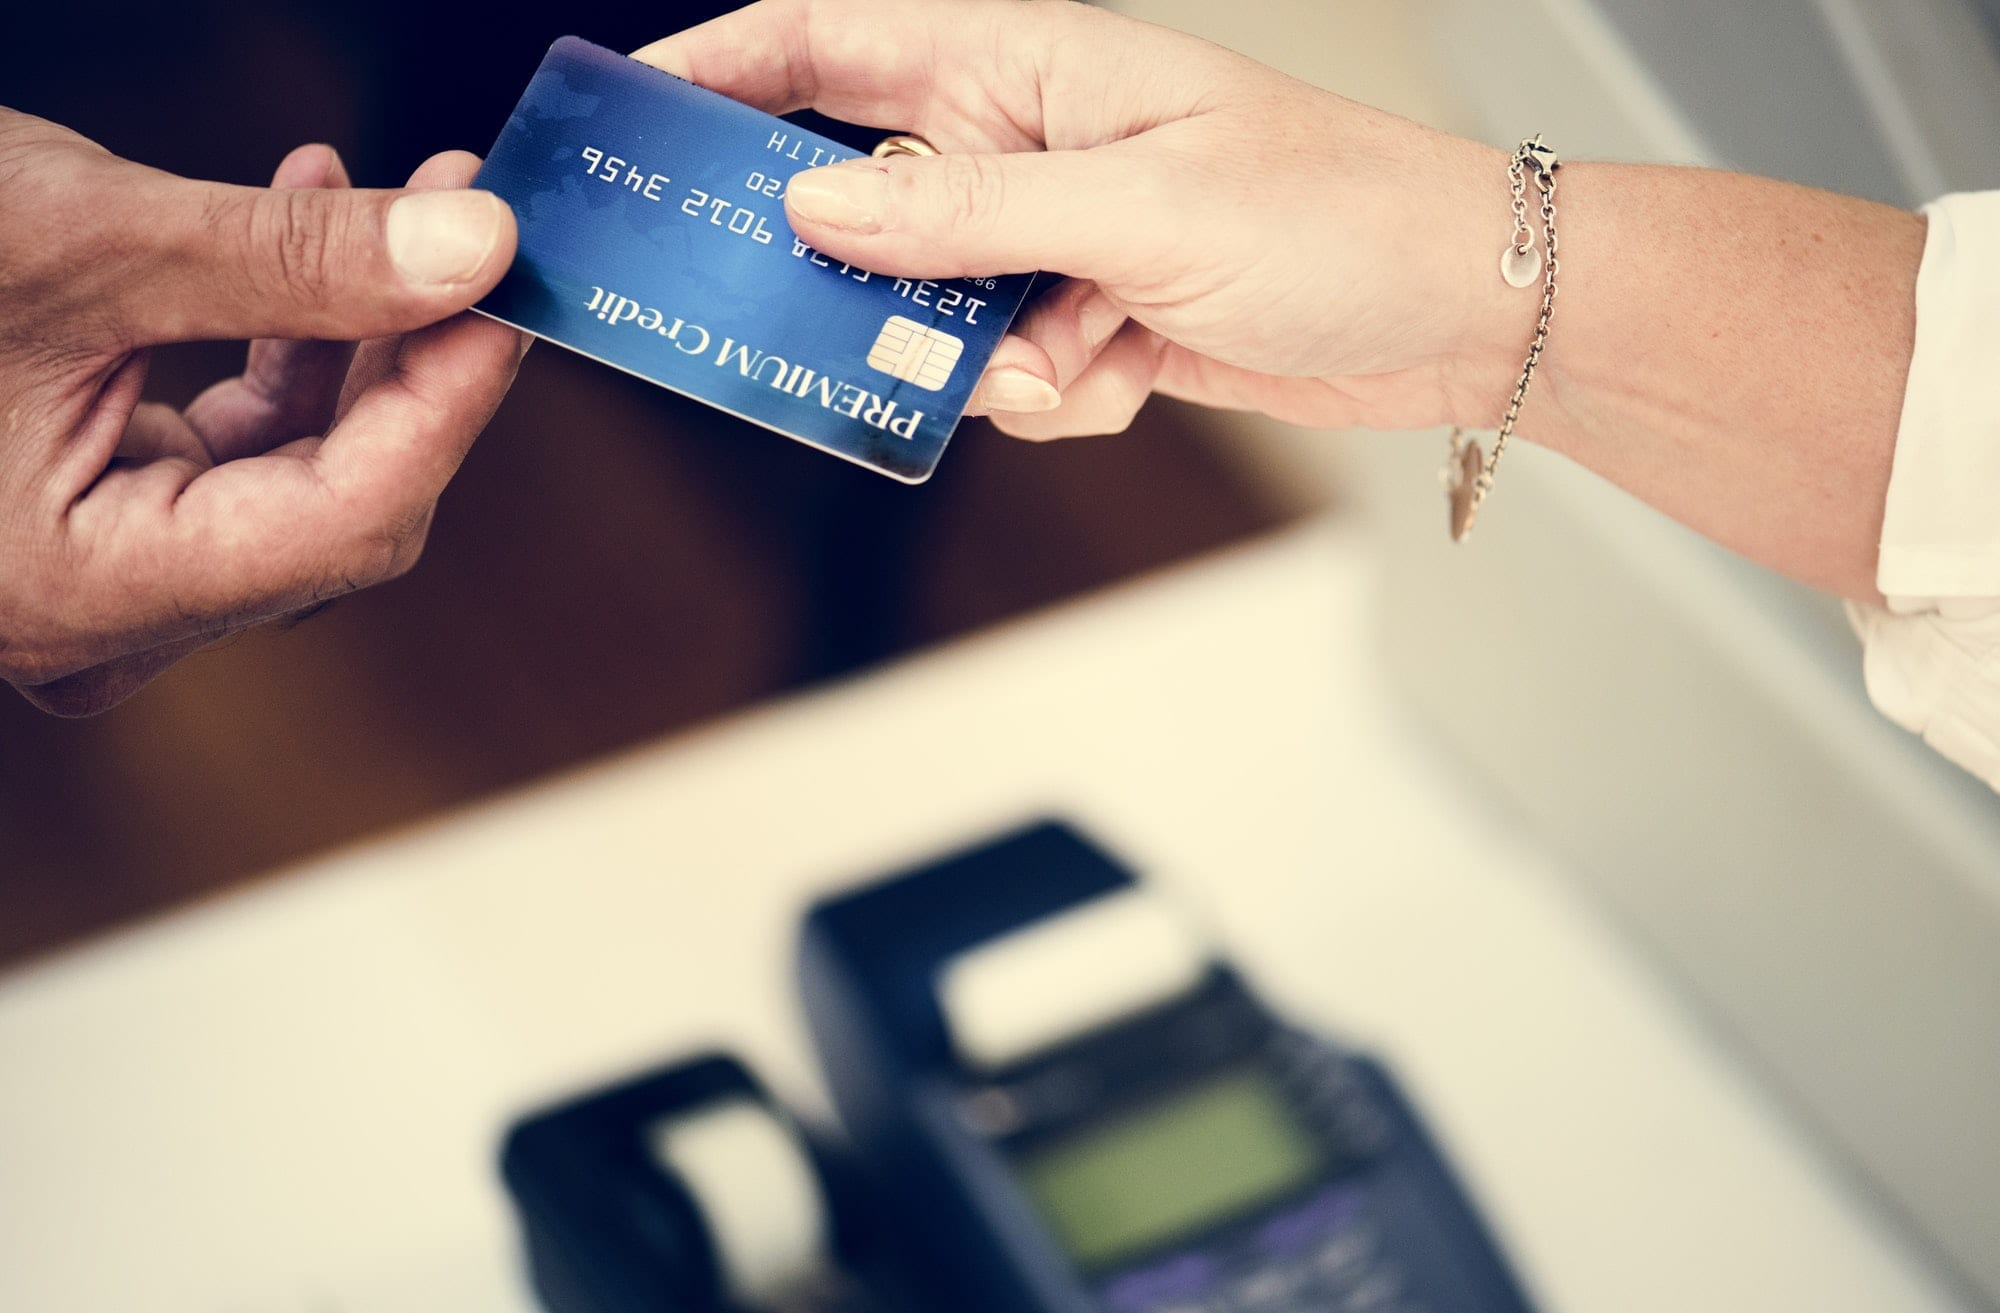 What You Need to Know About Accepting Credit Cards Online: Different Rules for a Different Game